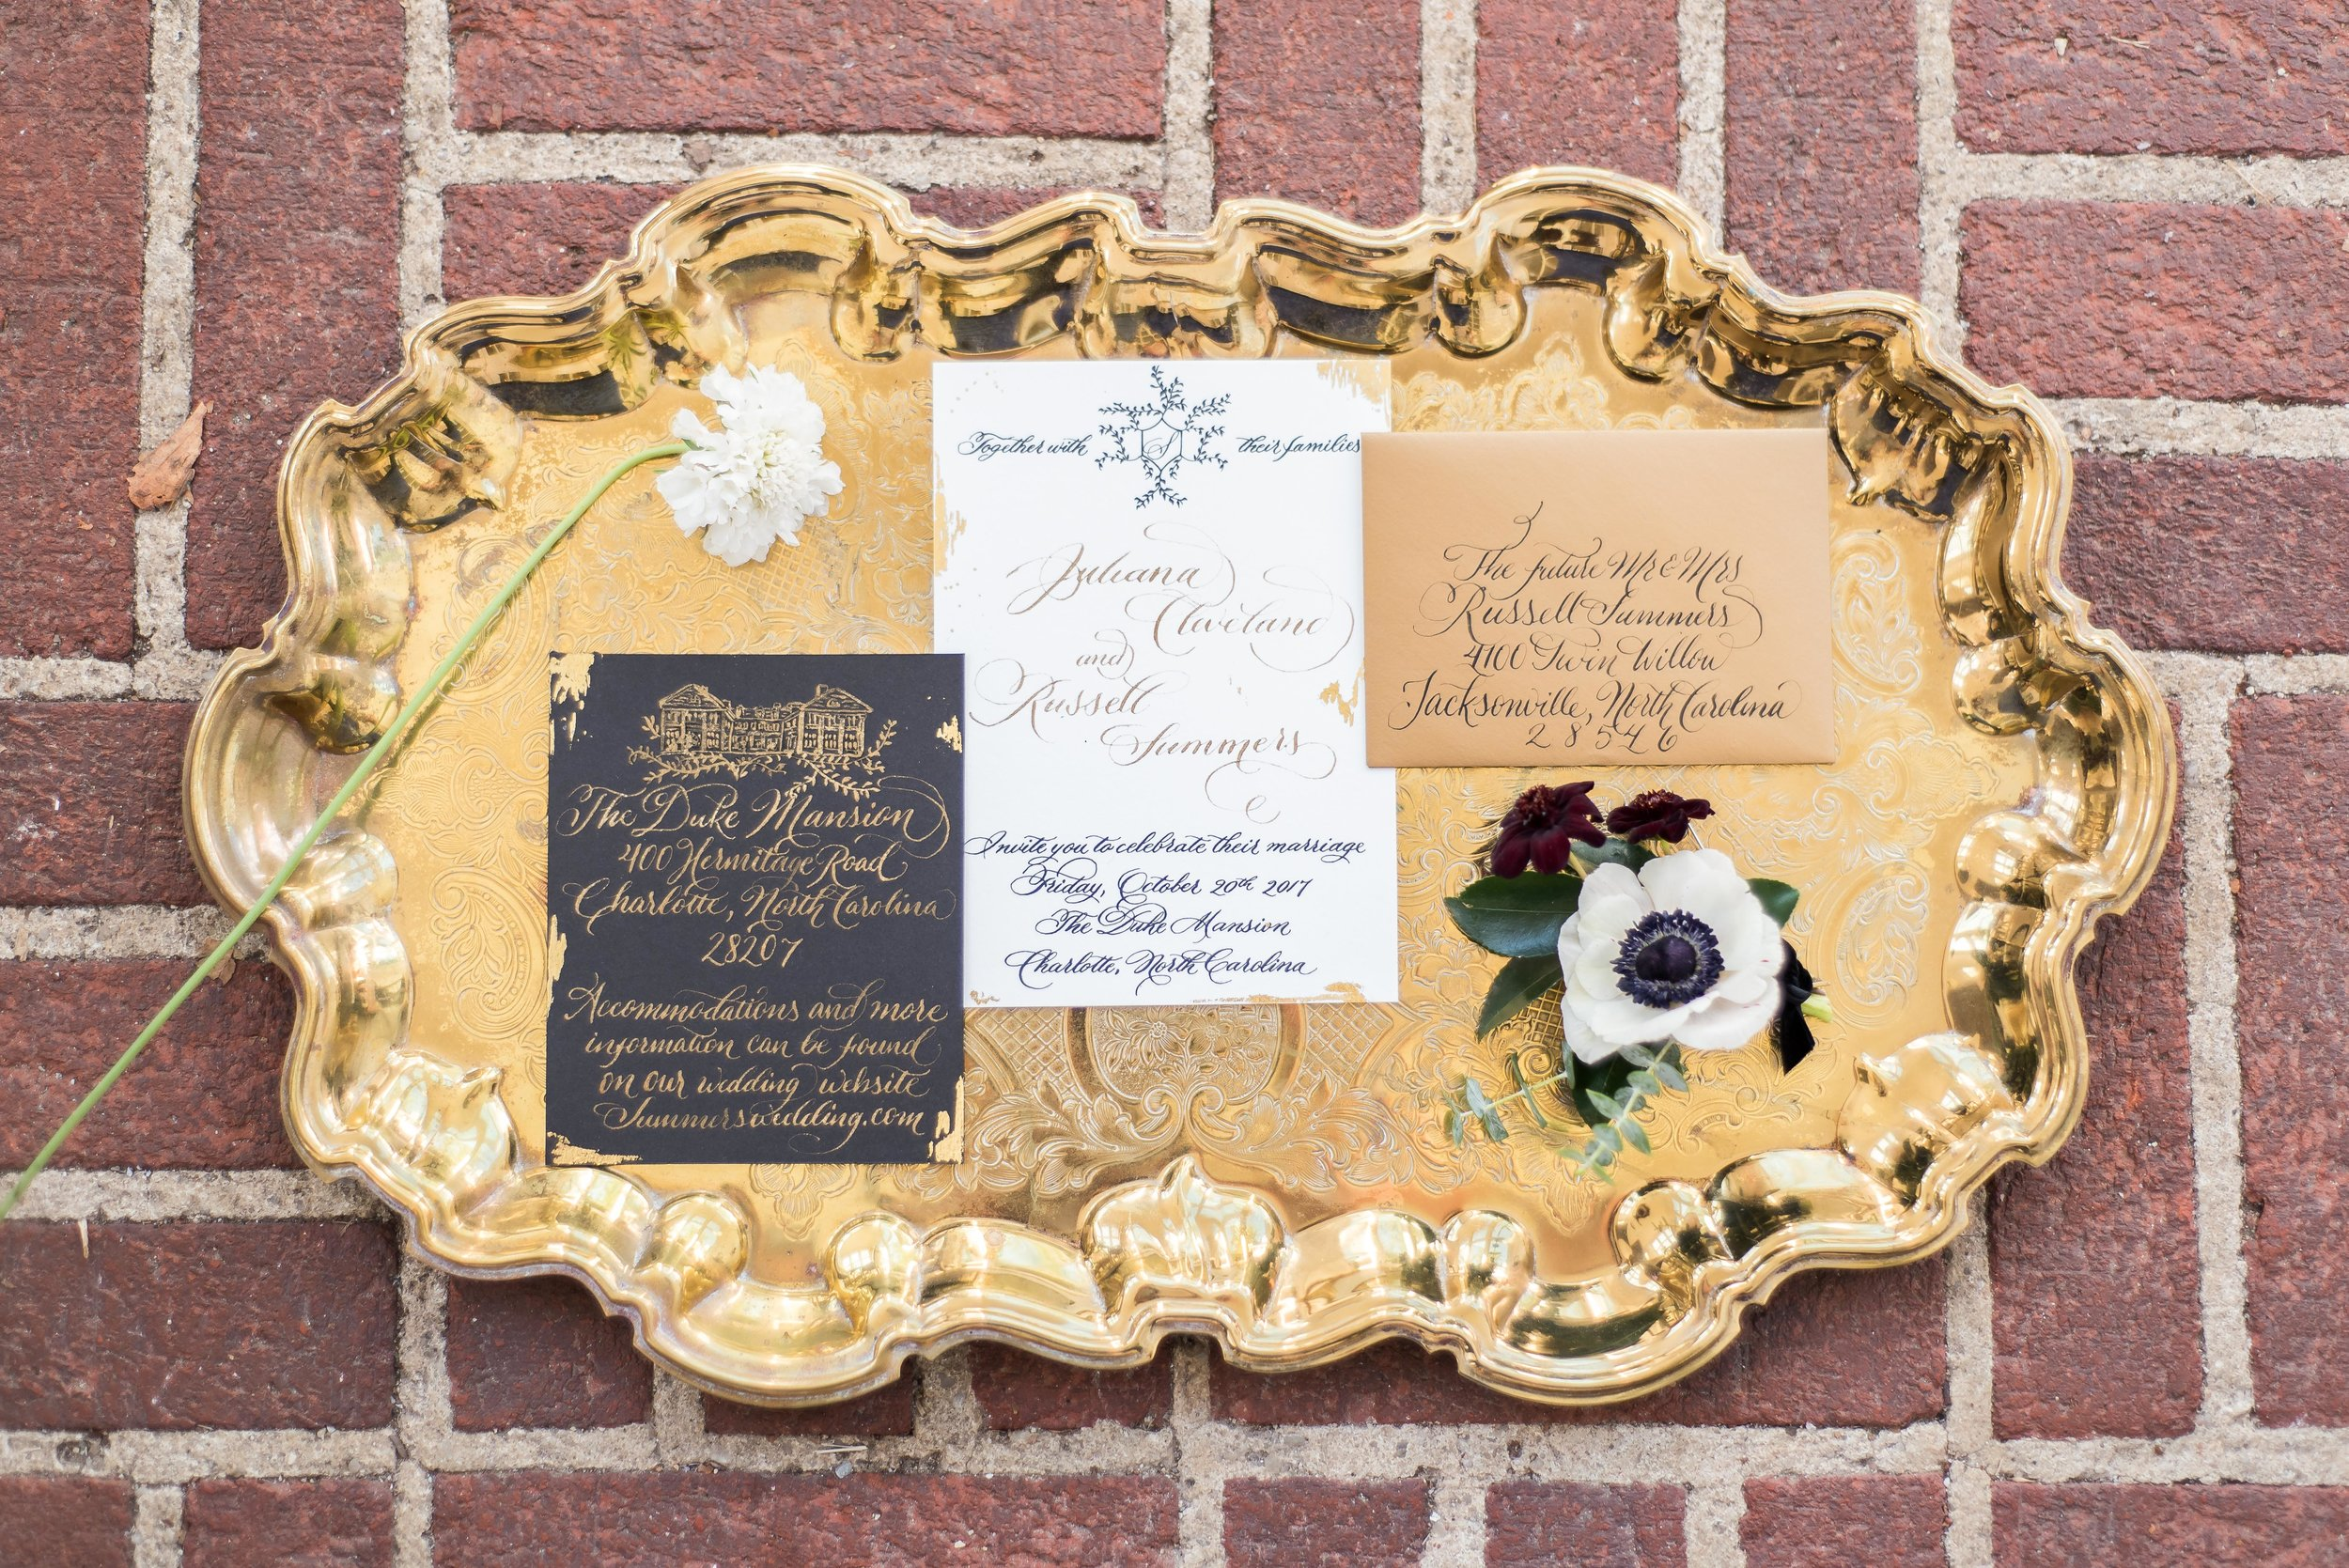 Black and Gold wedding invitation suite, Duke Mansion